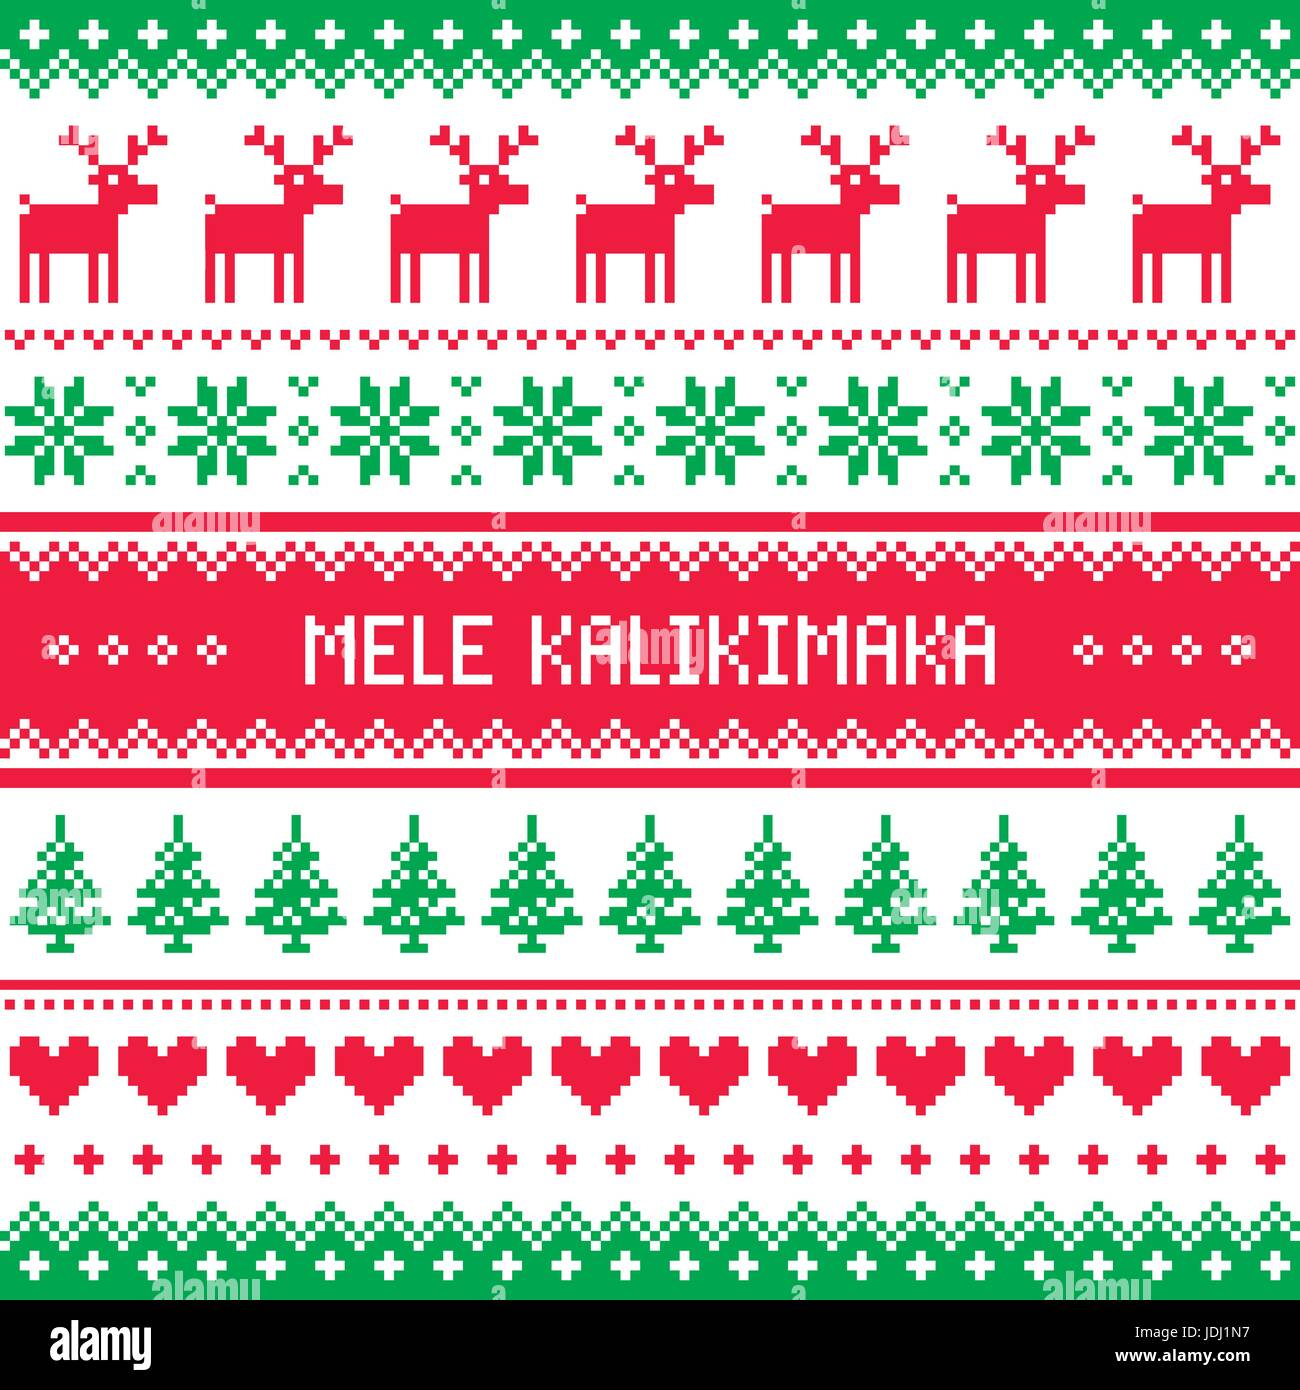 Hawaiian Merry Christmas.Mele Kalikimaka Merry Christmas In Hawaiian Greetings Card